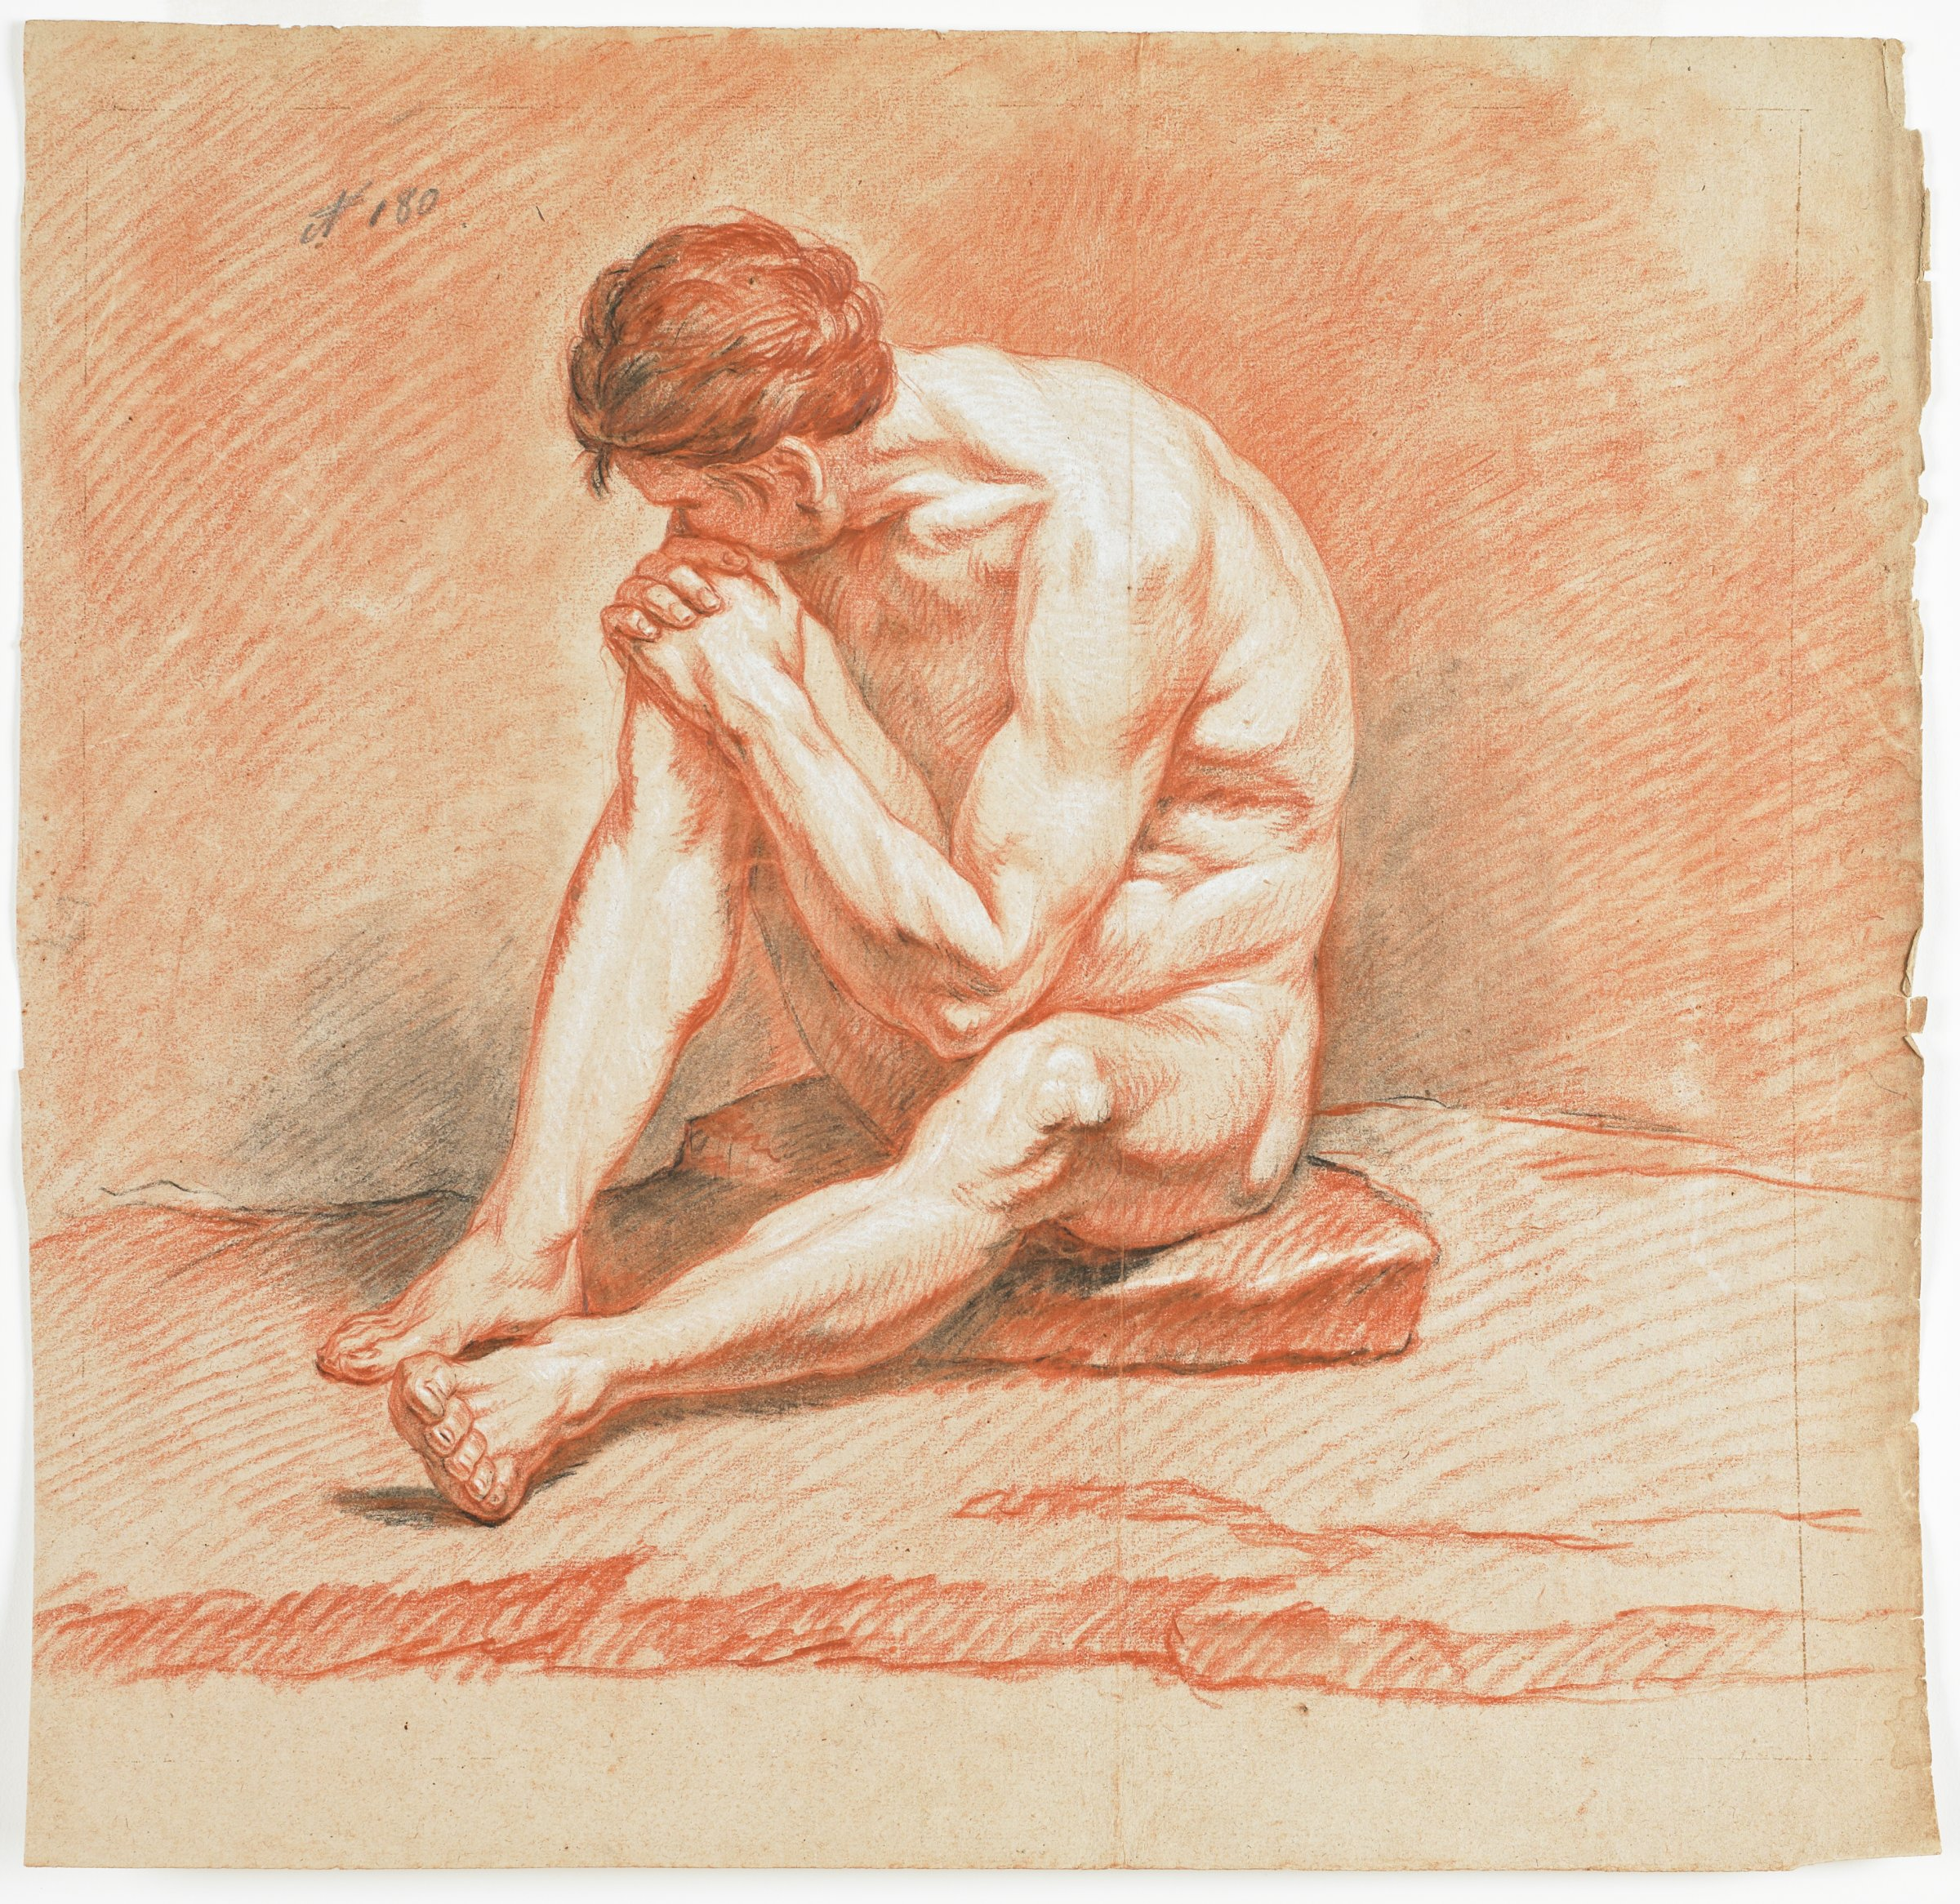 Nude man seated on a stone with left leg bent and right knee pulled up, with hands clasped over knee. Left cheek resting on hands with head turned away from viewer.